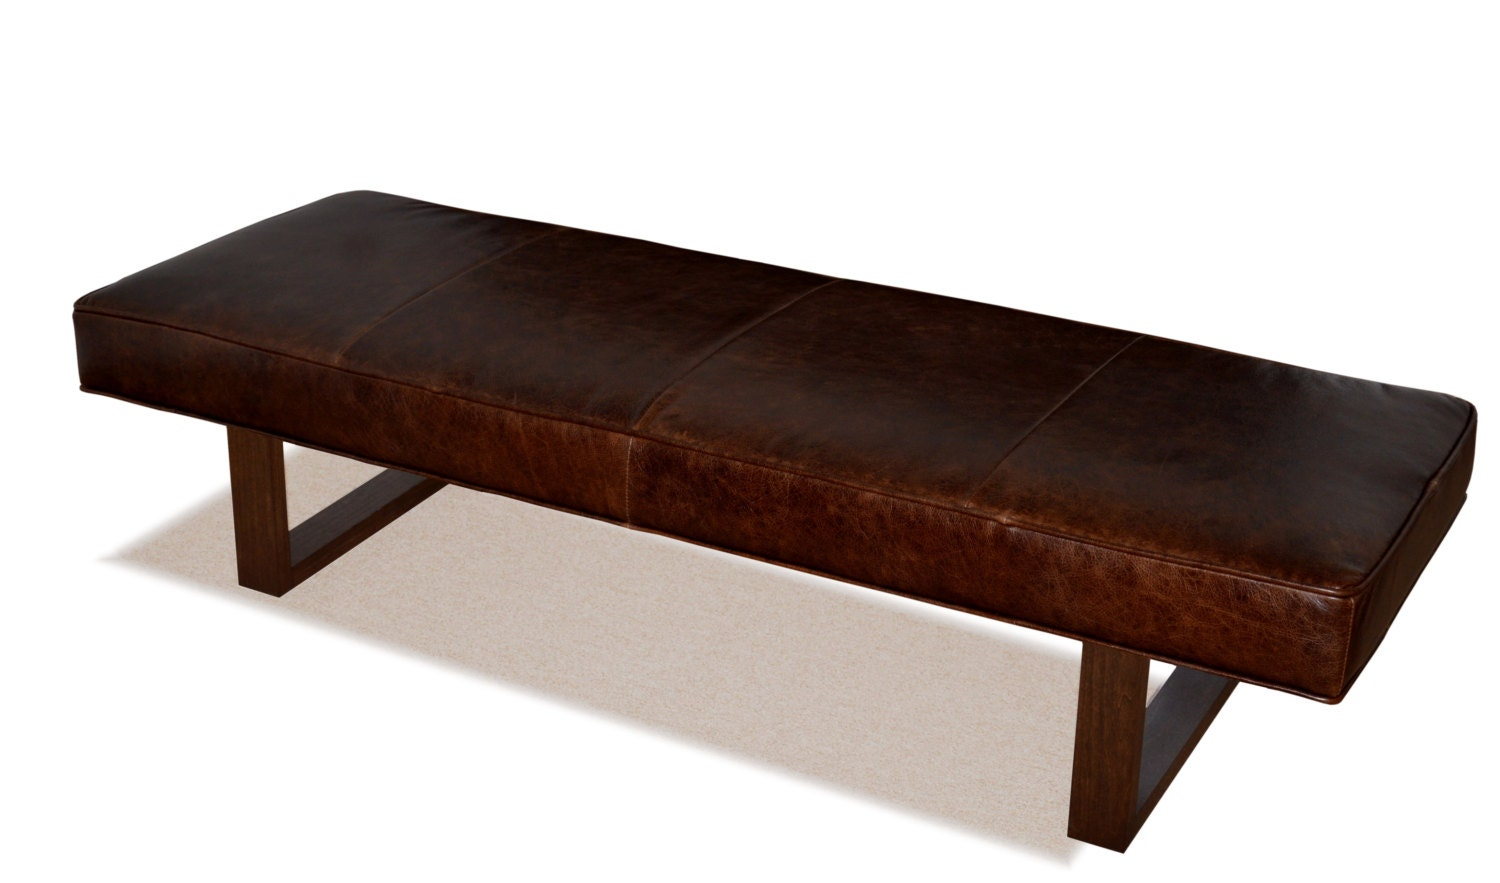 Genuine Leather Upholstered Bench Ottoman Coffee Table